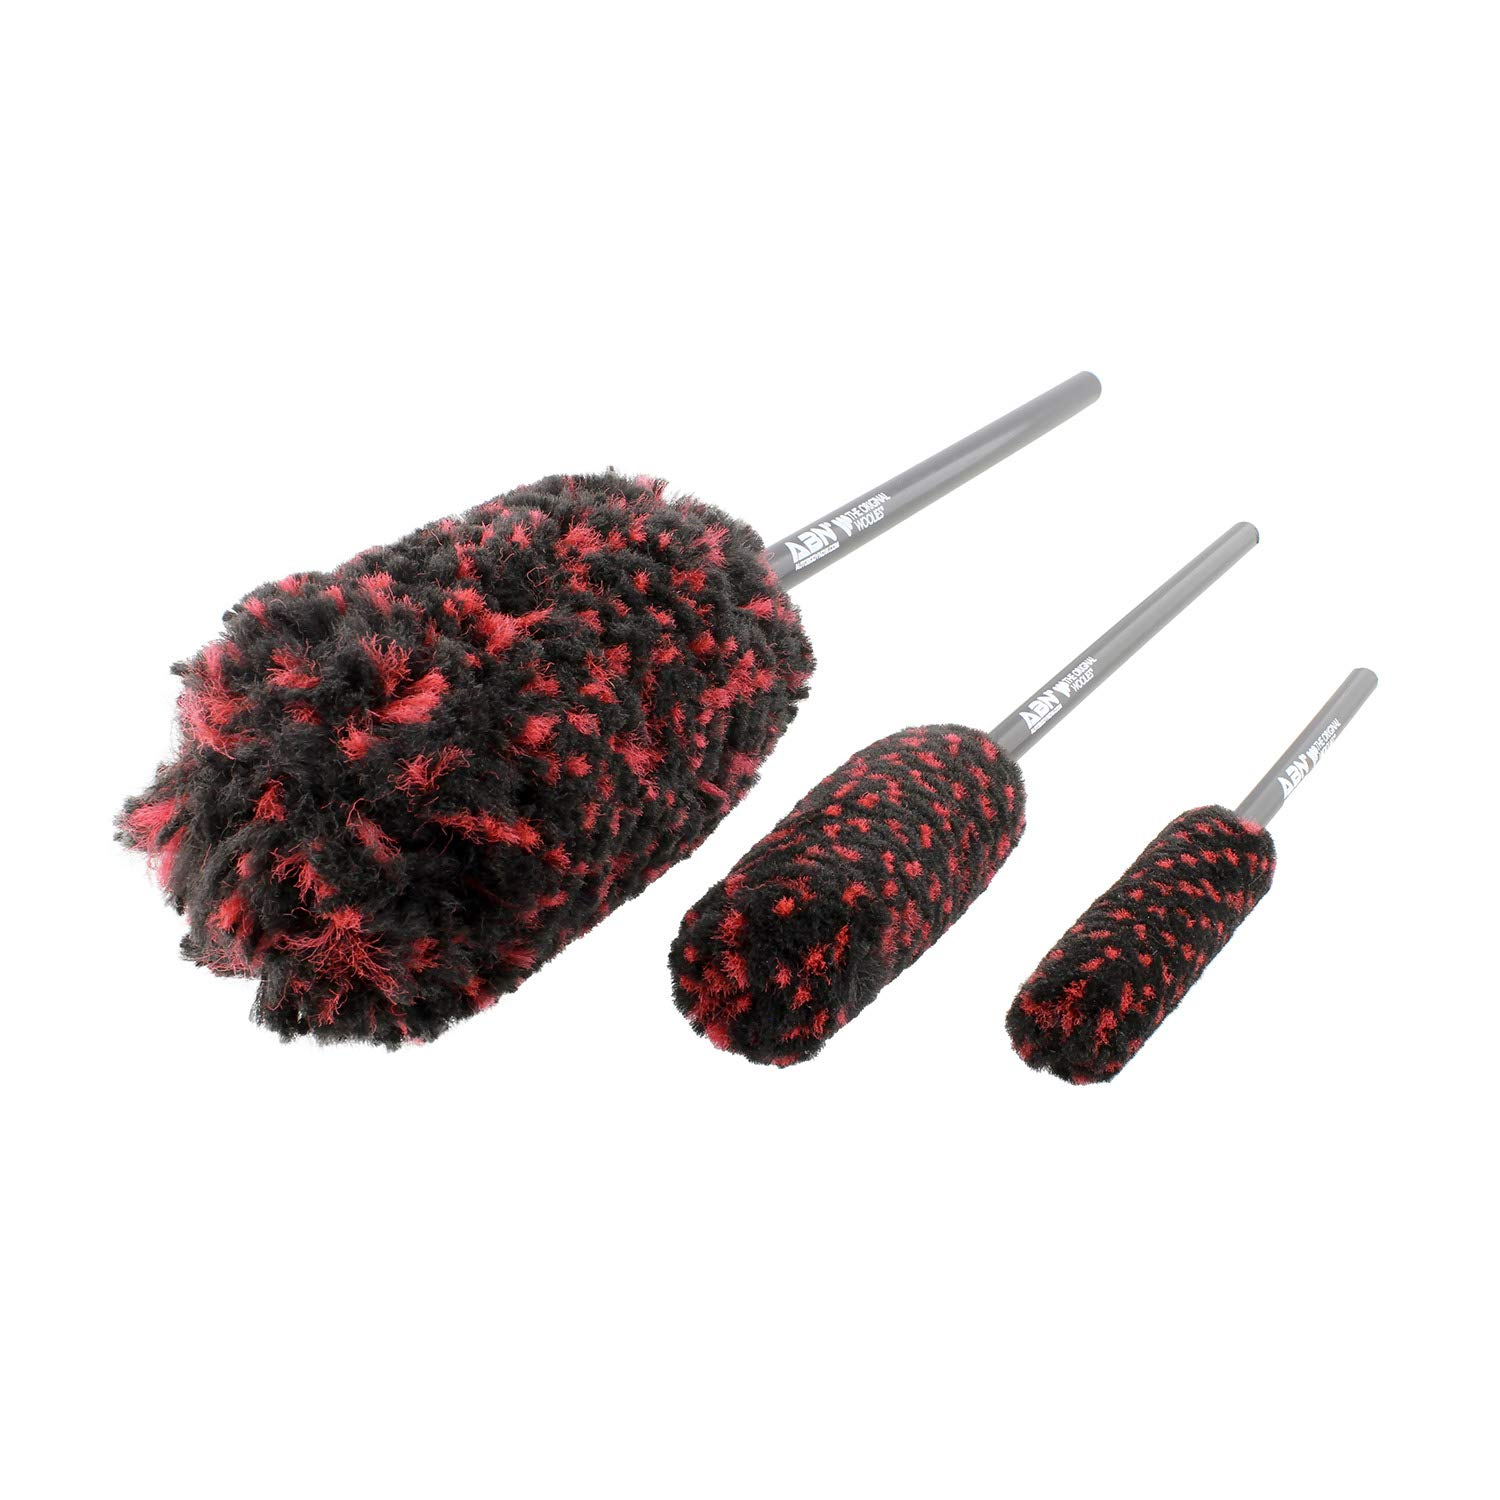 ABN Car Wheel Rim Cleaning 3-Piece Kit - Original Wheel Woolies Brush Stick Tool Tire Woolie Wooly Wand Set (3 Brushes) by ABN